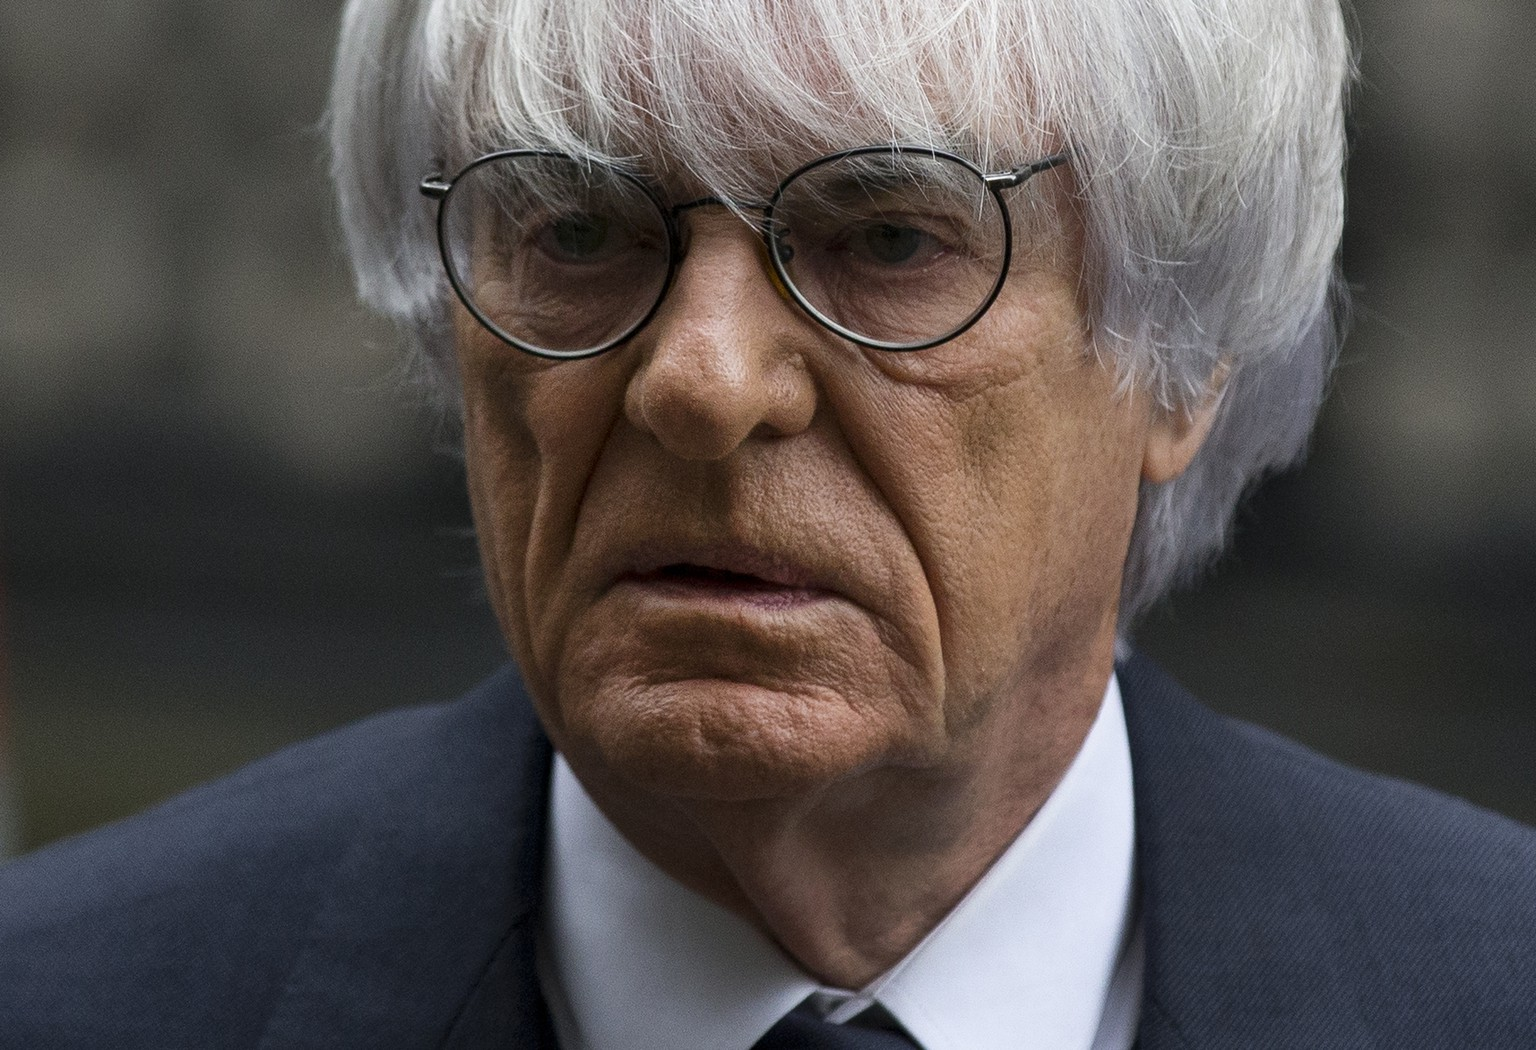 FILE - In this Nov. 11, 2013 file picture President and CEO of Formula One Management Bernie Ecclestone arrives for his case at the High Court in London. Ecclestone goes on trial in Munich on Thursday, April 24, 2014, on bribery charges that could put him in prison for up to 10 years if convicted. The trial could spell the end of the 83-year-old Ecclestone's career in the racing series that has become a lucrative business under his guidance. (AP Photo/Matt Dunham, File)